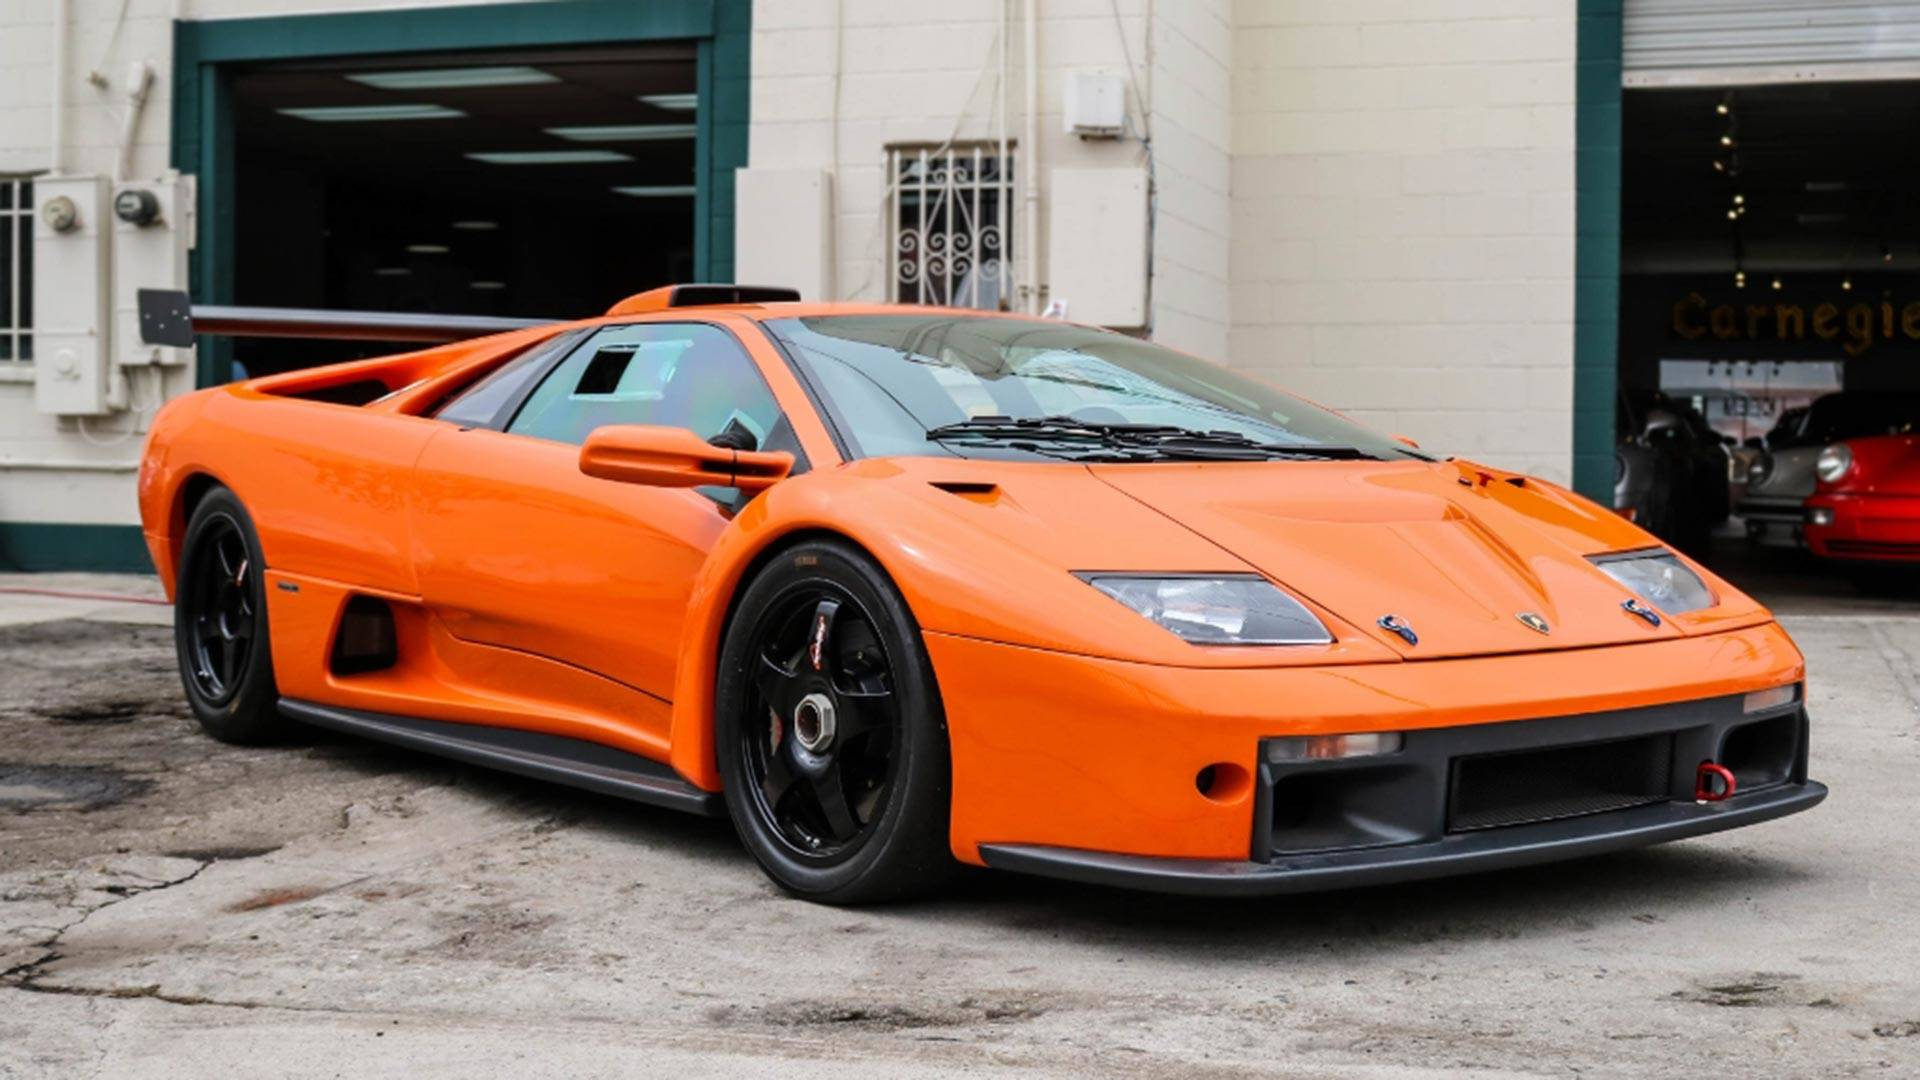 Lamborghini Diablo Gtr Will Make You A Track Day King For 645k